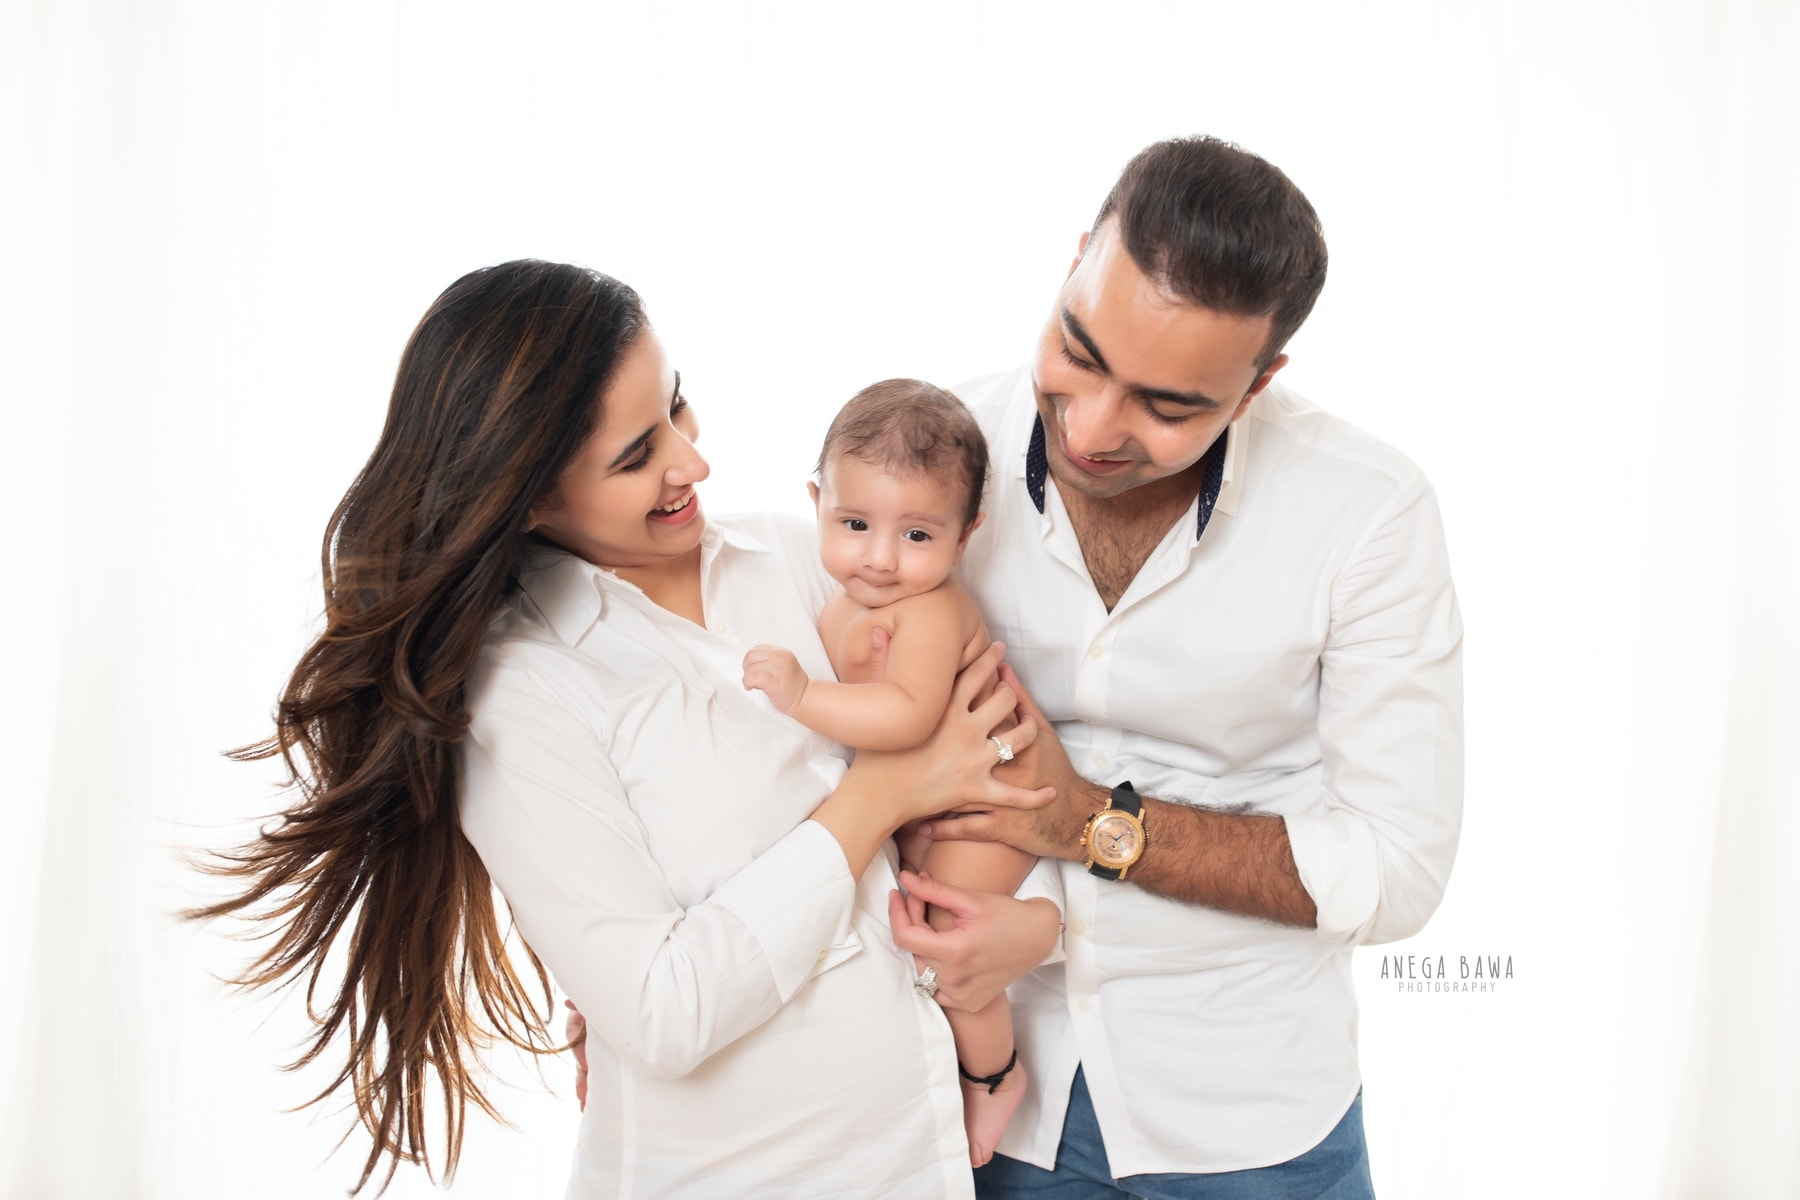 white family photography delhi 4 months baby boy photoshoot gurgaon anega bawa